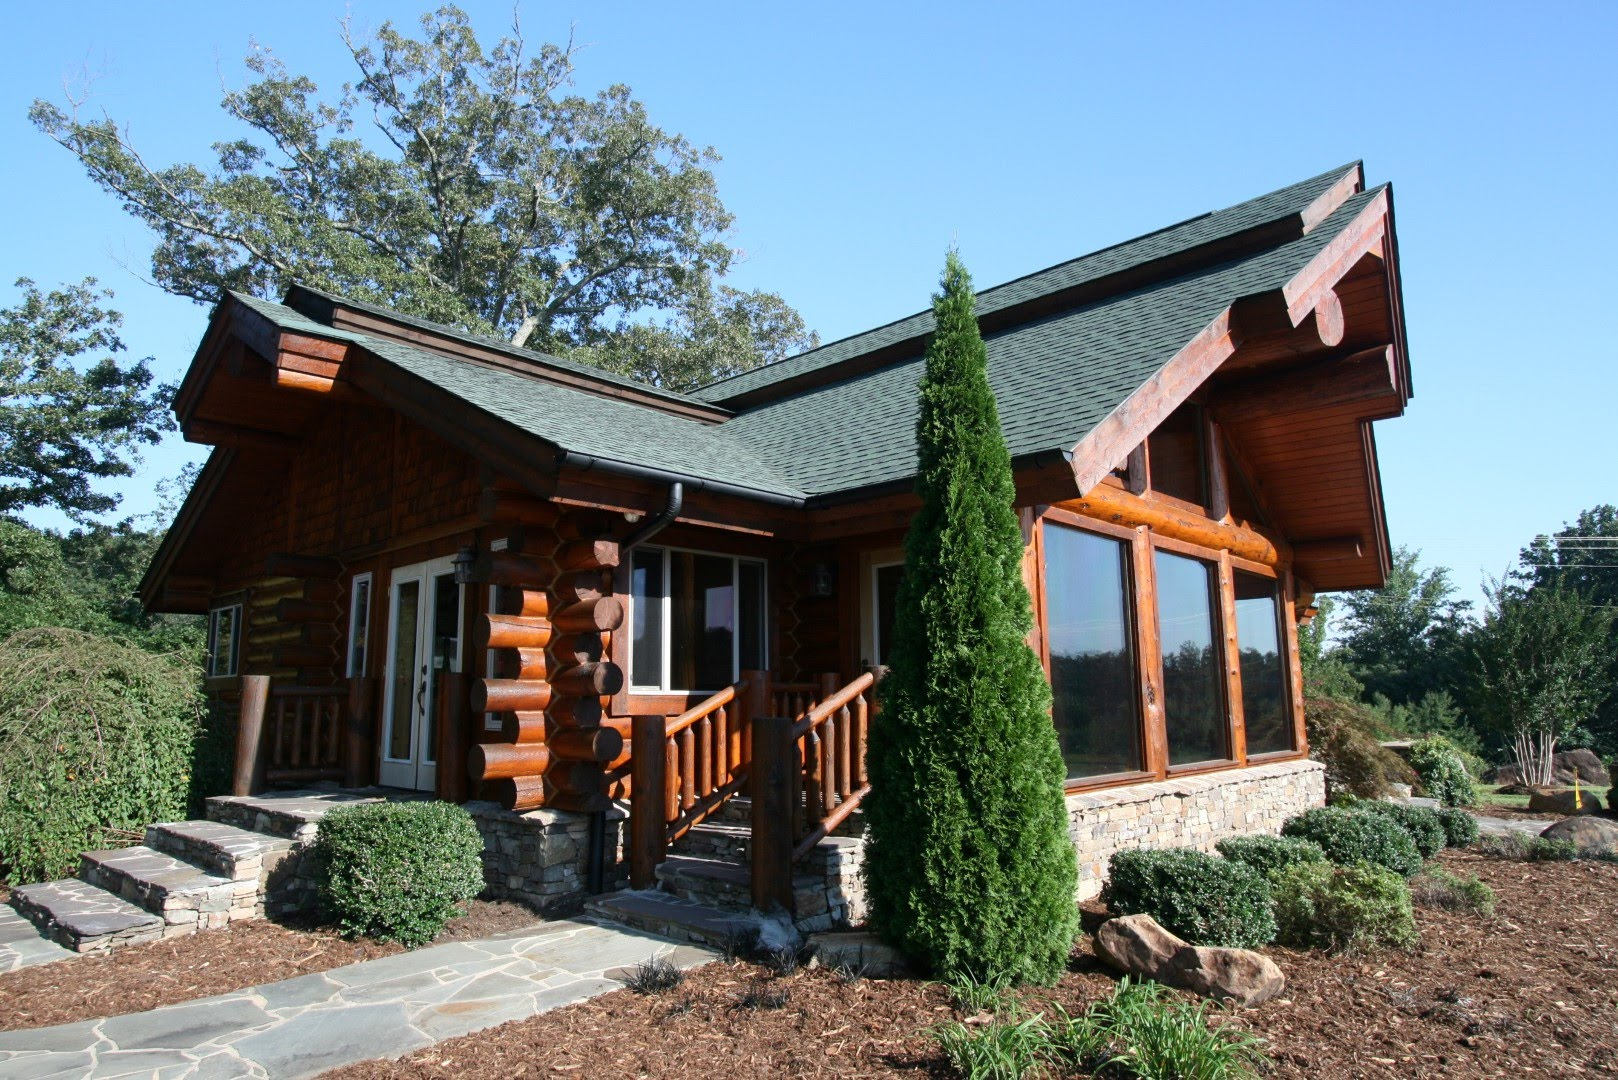 Custom exterior design of Southland Log Homes with glass door and staircase plus pine tree ideas